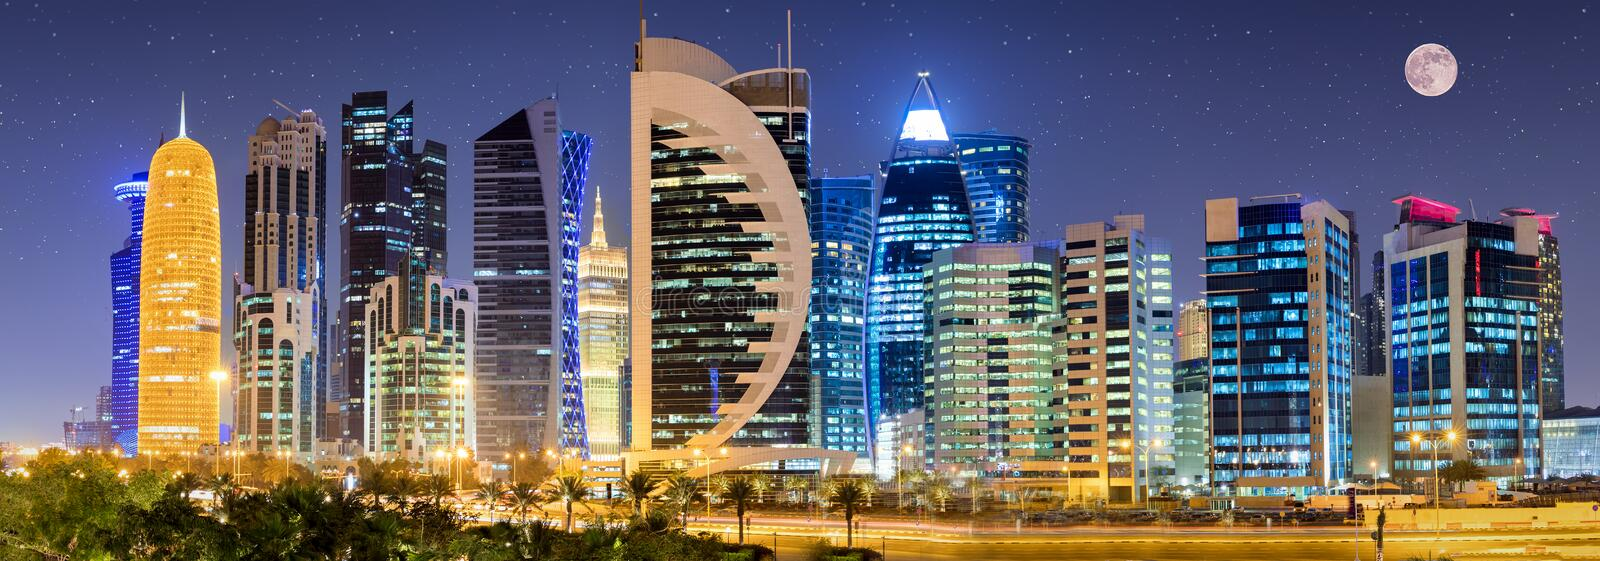 The skyline of Doha with full moon and stars. The skyline of Doha, Qatar, by night with full moon and stars stock images